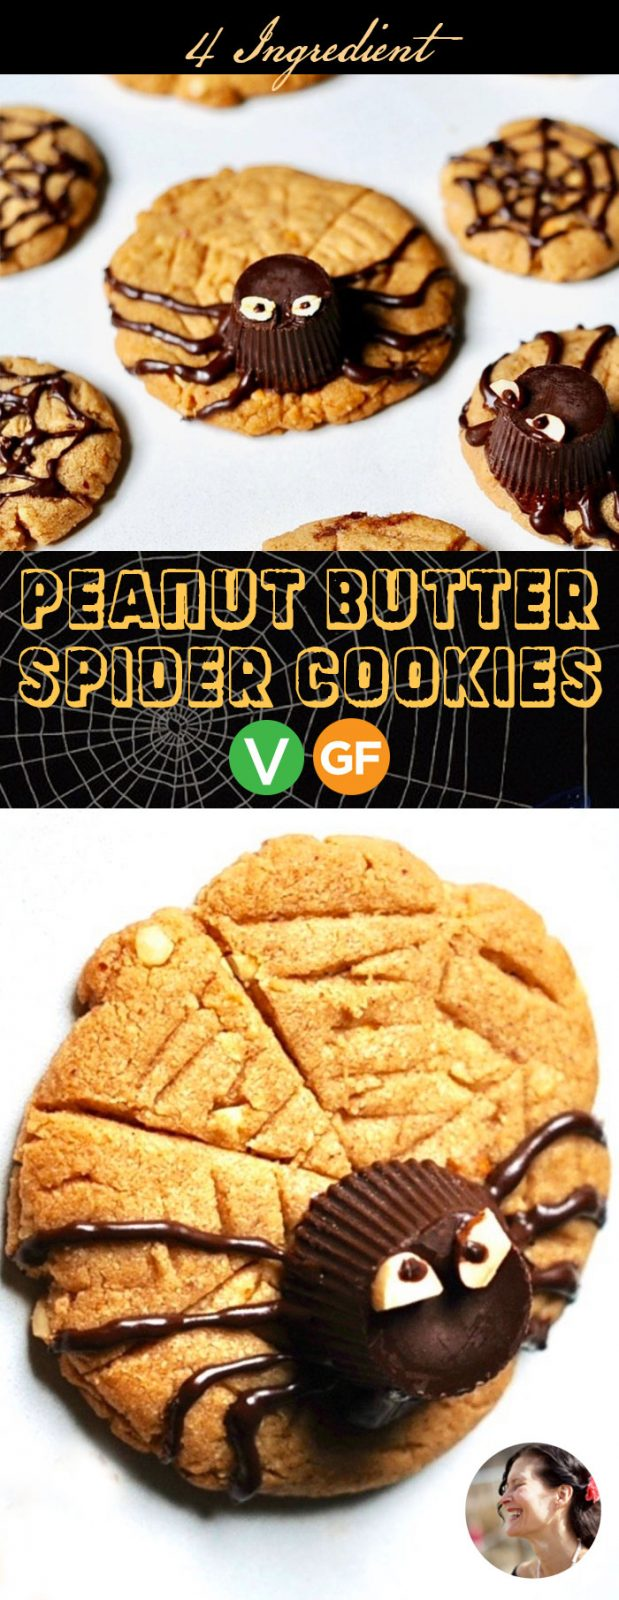 Peanut Butter Spider Cookies for Halloween